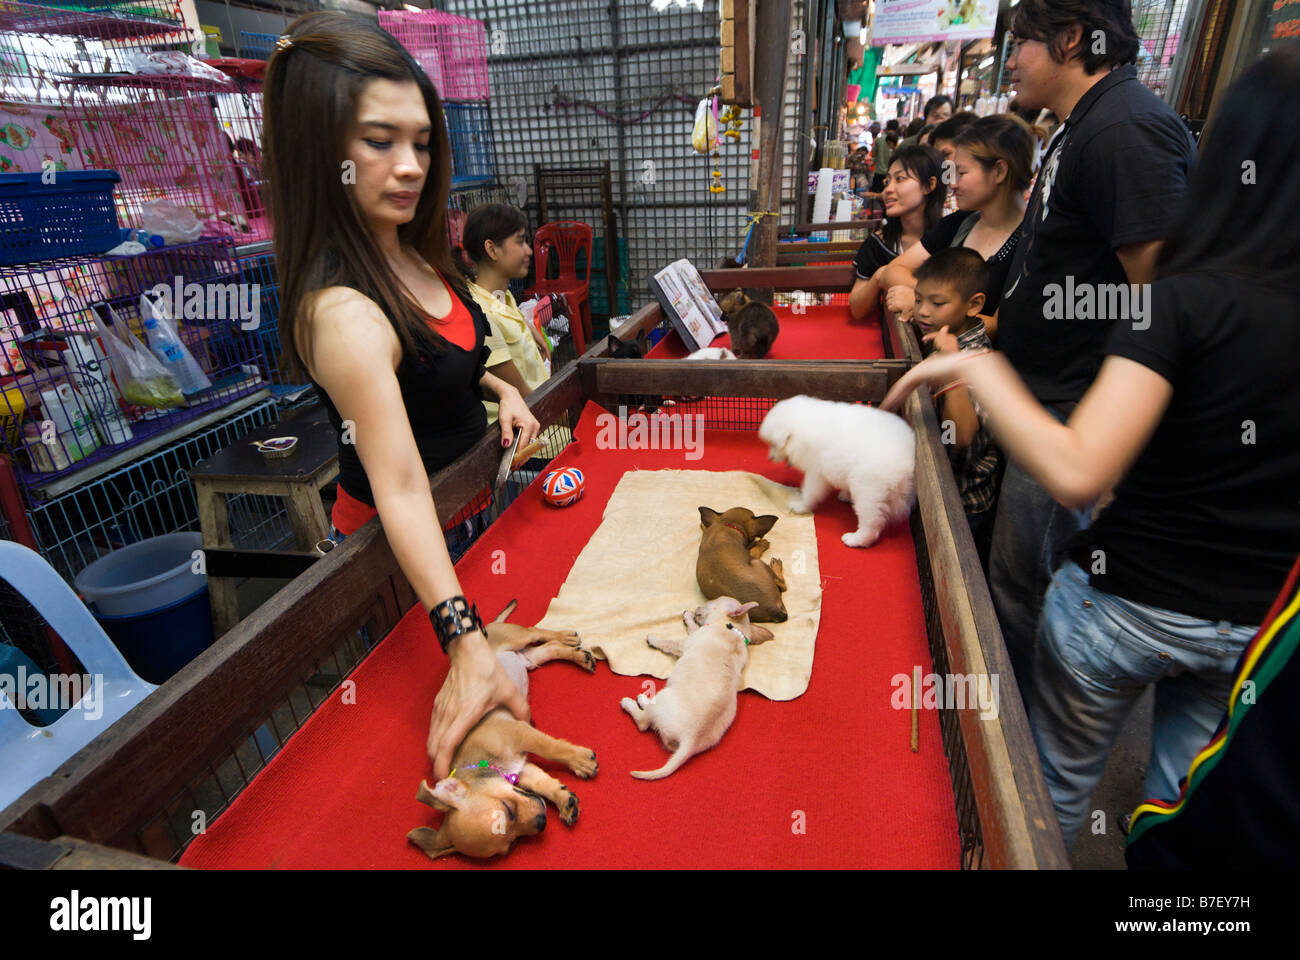 Woman selling pet puppies on a stall at Chatuchak Weekend Market in Bangkok Thailand - Stock Image